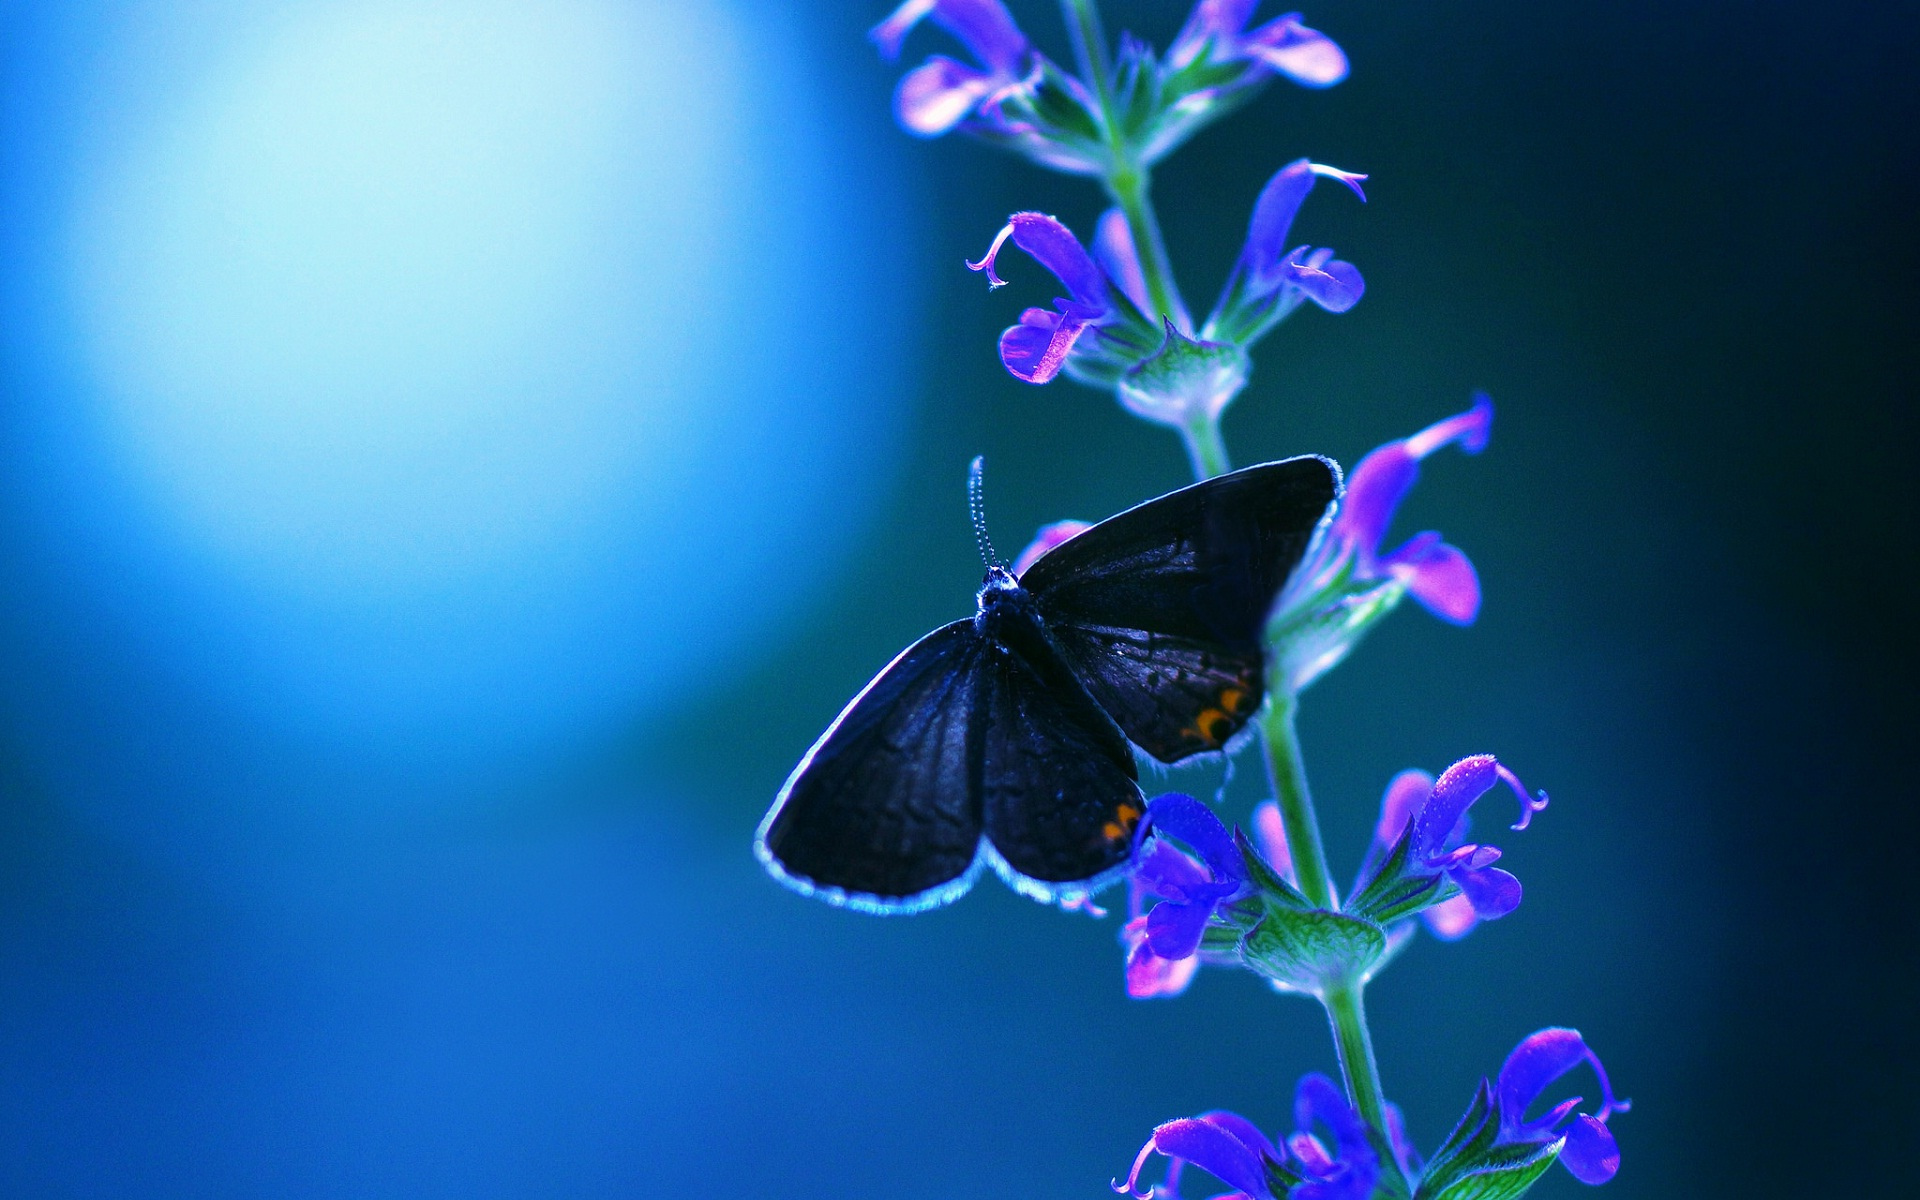 Cool night and blue butterfly and flowers wallpapers HD 1920x1200